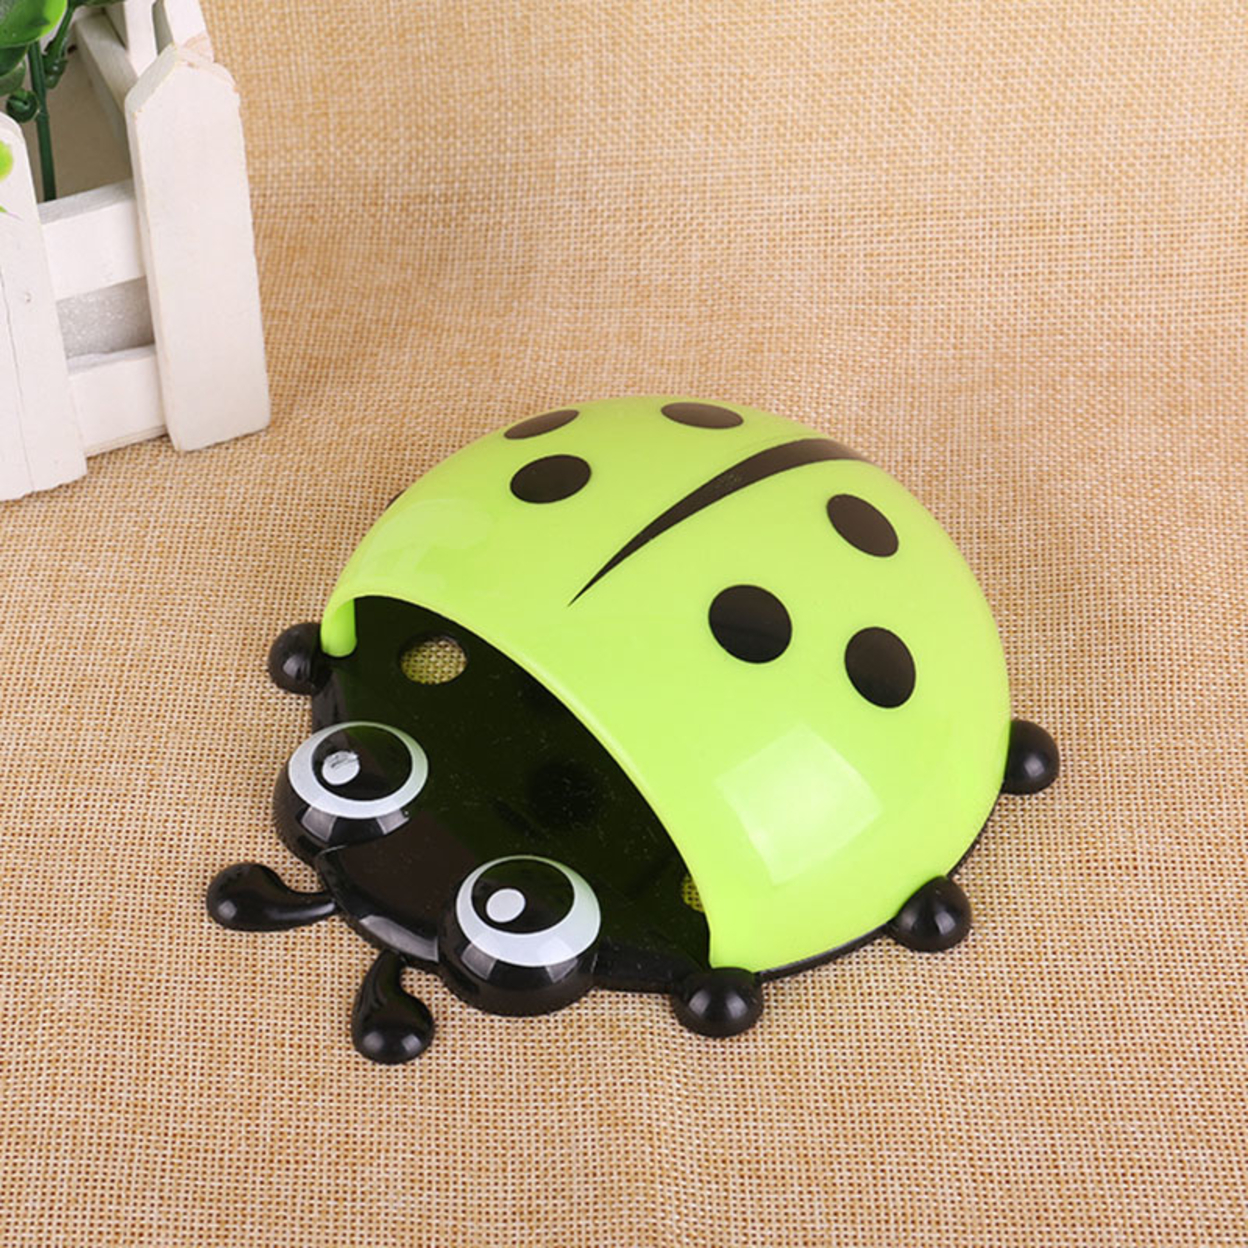 Creative Seven Star Ladybug Toothbrush Holder Strong Sucker Toothbrush Green New 59c4be3ae2246139b27948cc